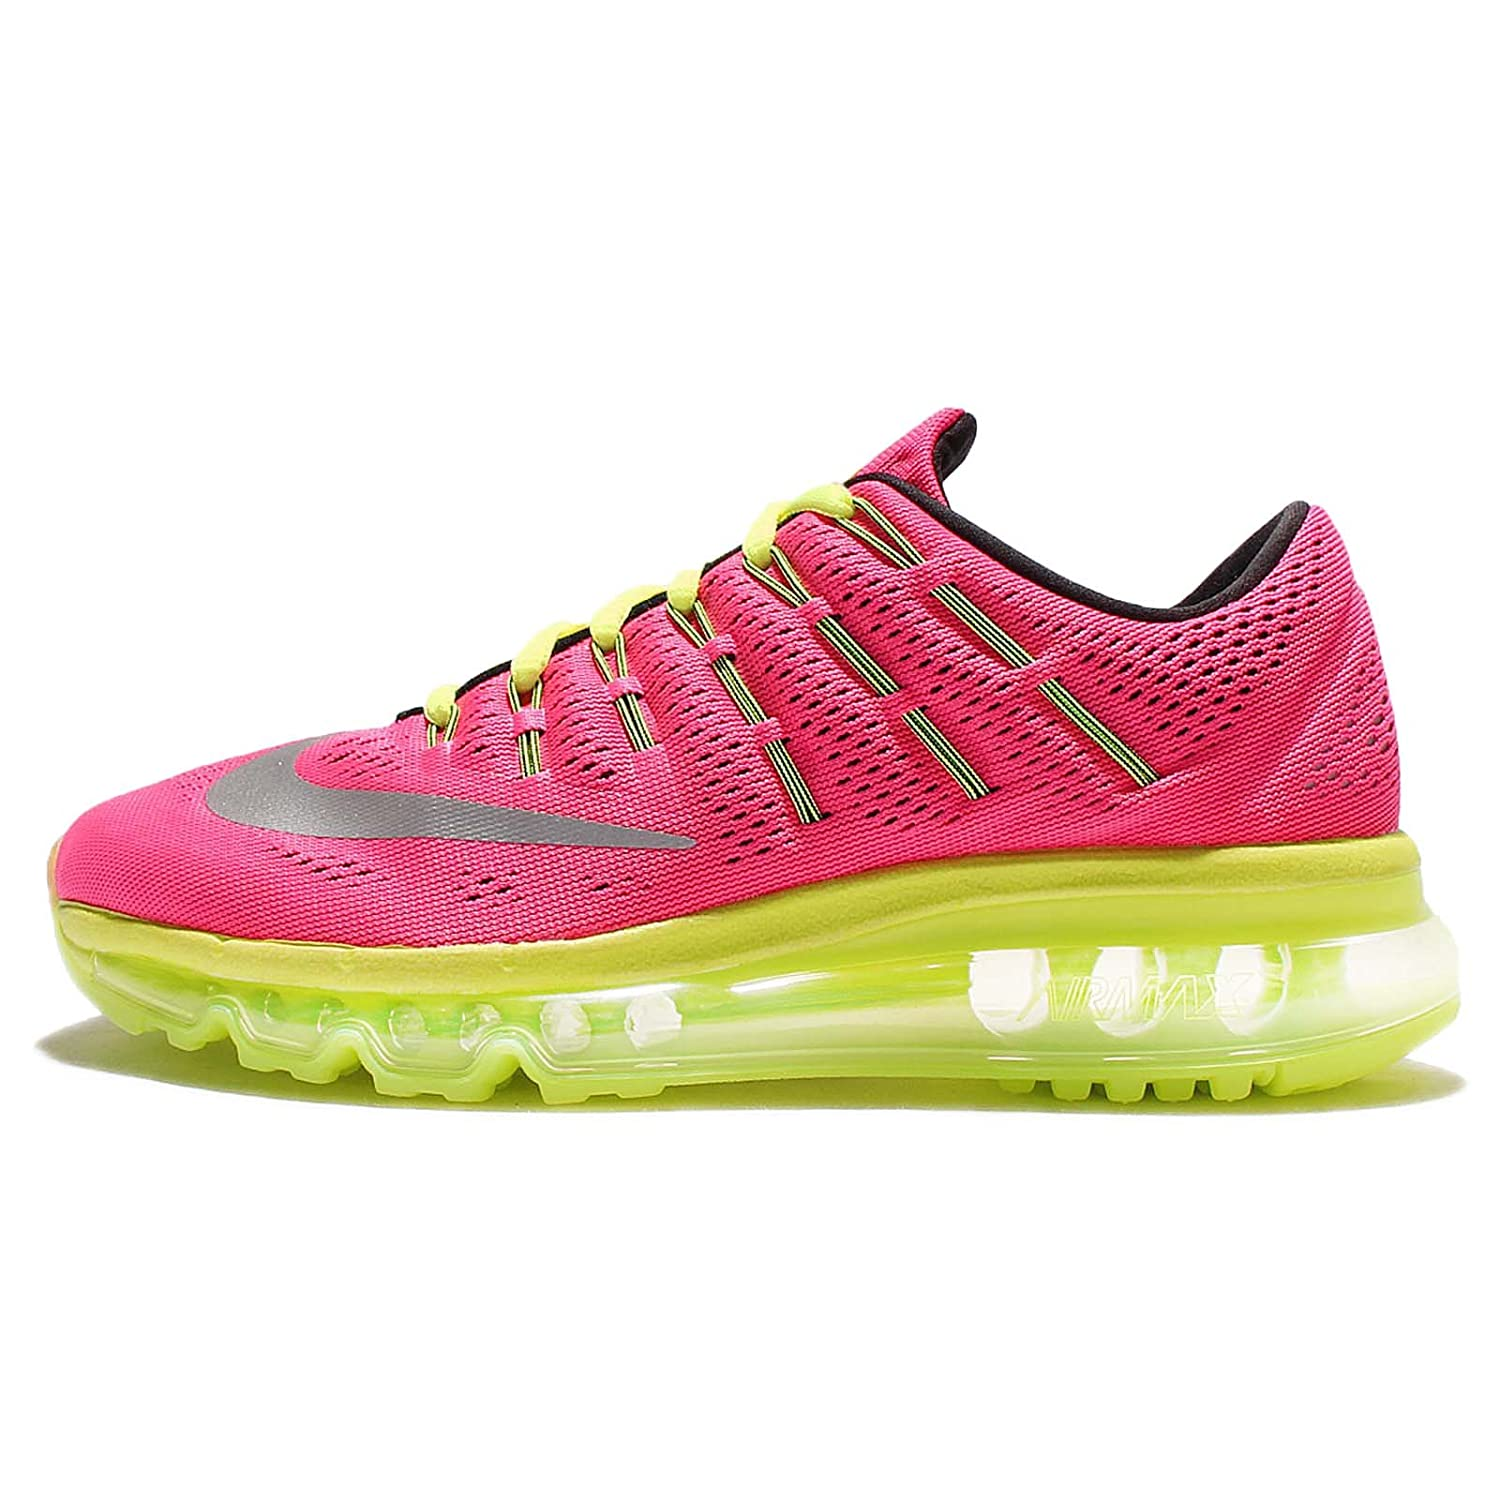 on sale aa0d8 f5bbc Nike Air Max 2016 (GS), Girls  Running Shoes, Pink (Hyper Pink   Reflect  Silver-Volt-Black), 3 UK (35.5 EU)